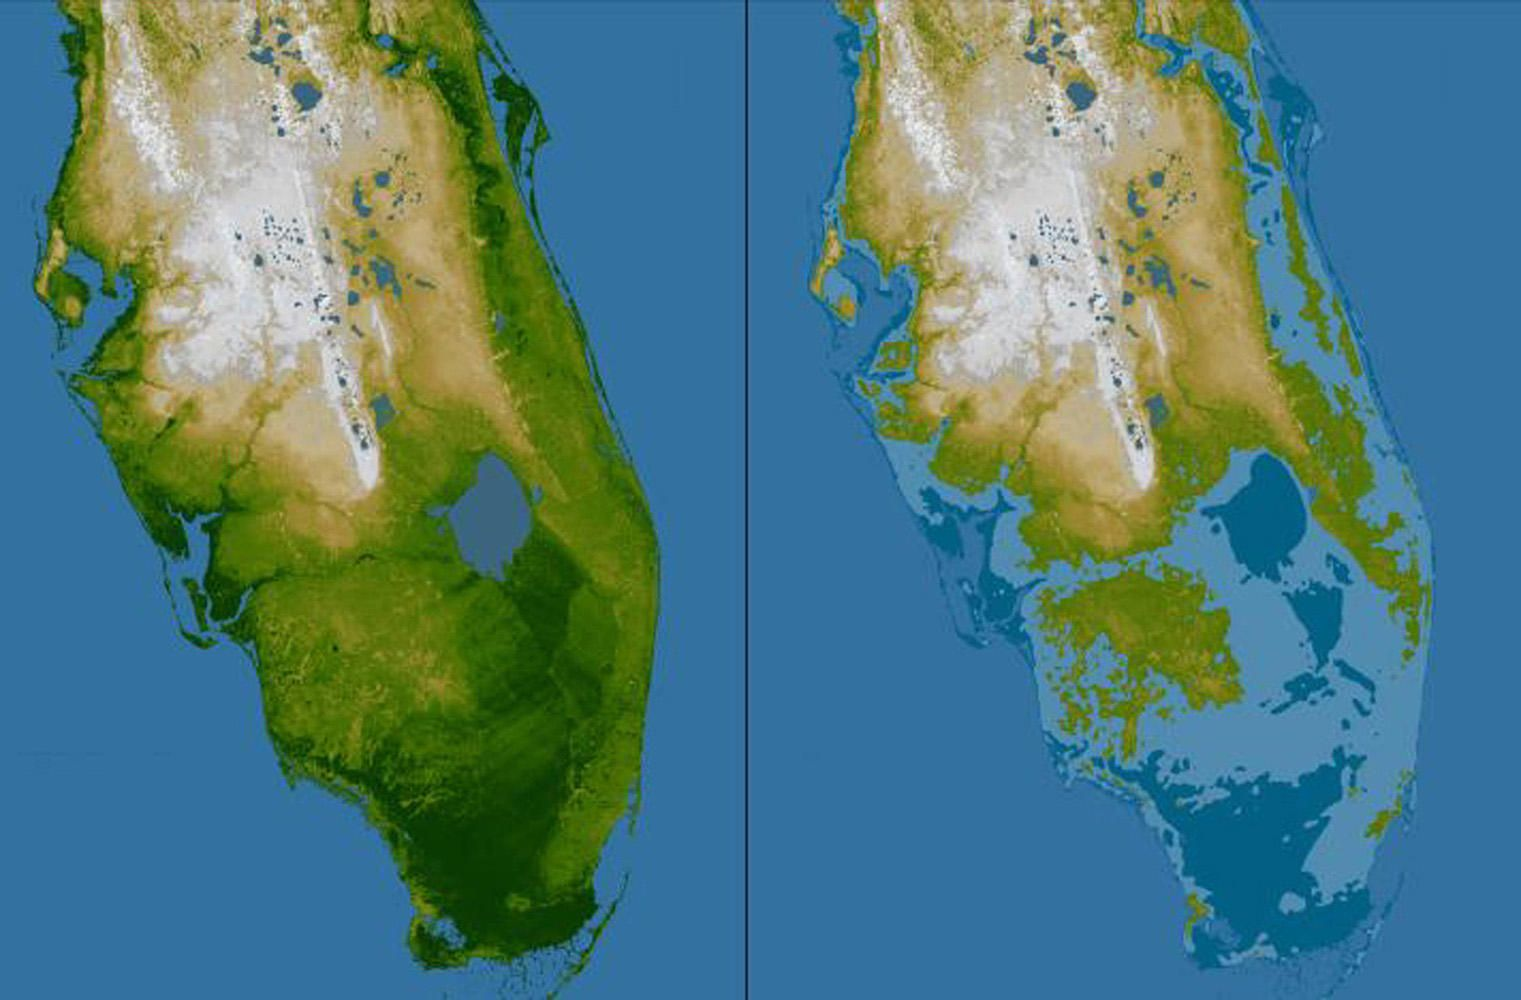 Florida before and after sea level rise